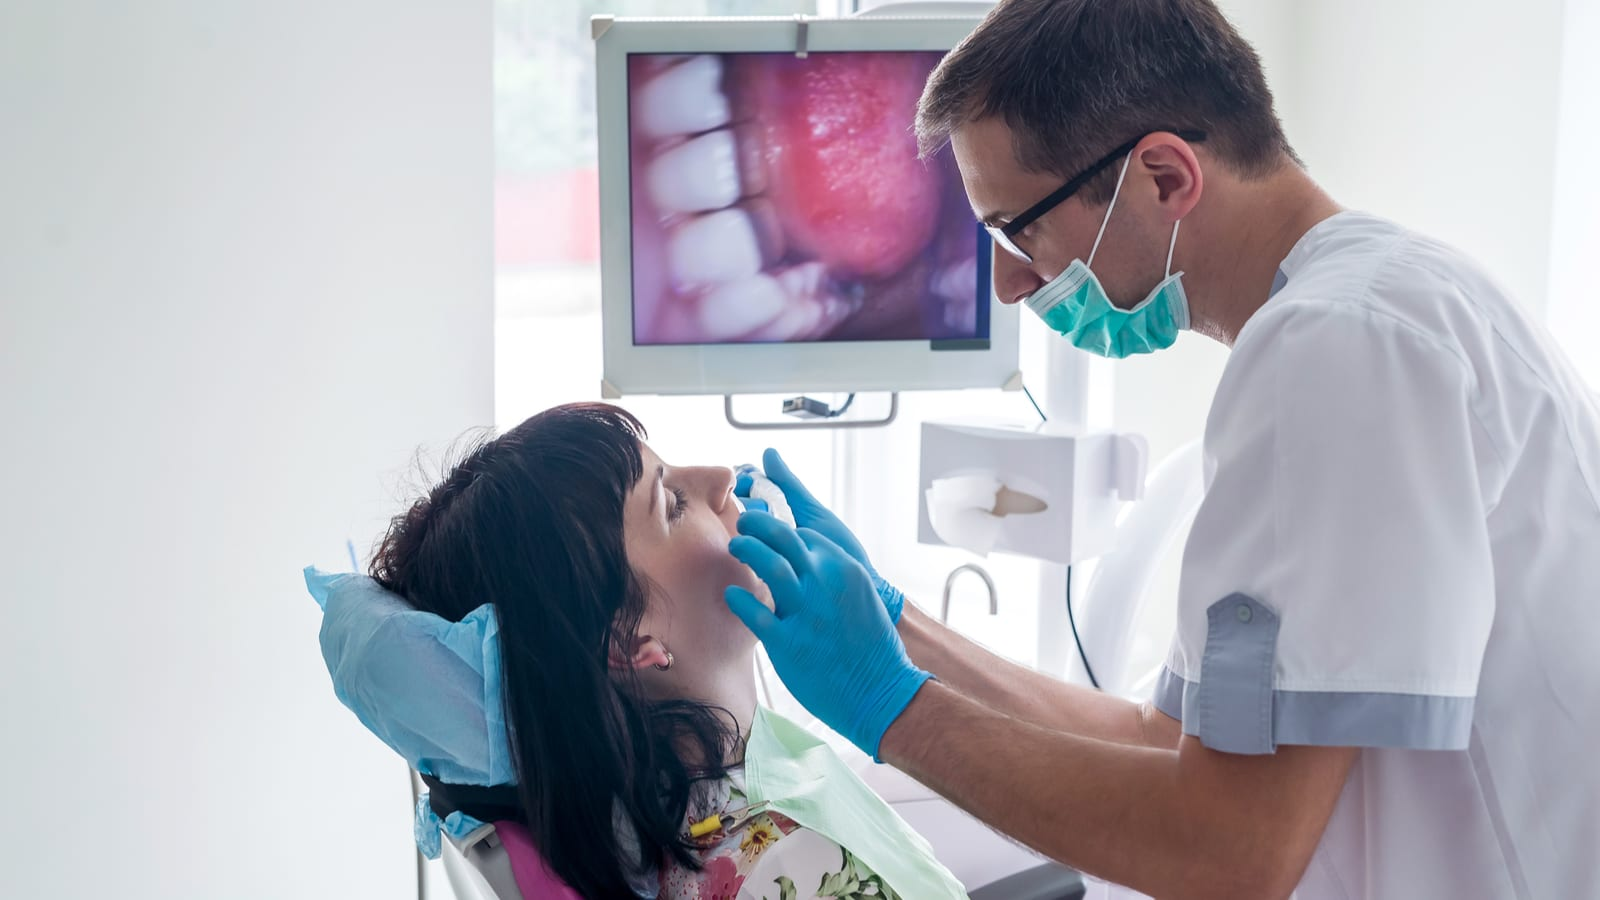 Dentist examining patient with intraoral camera